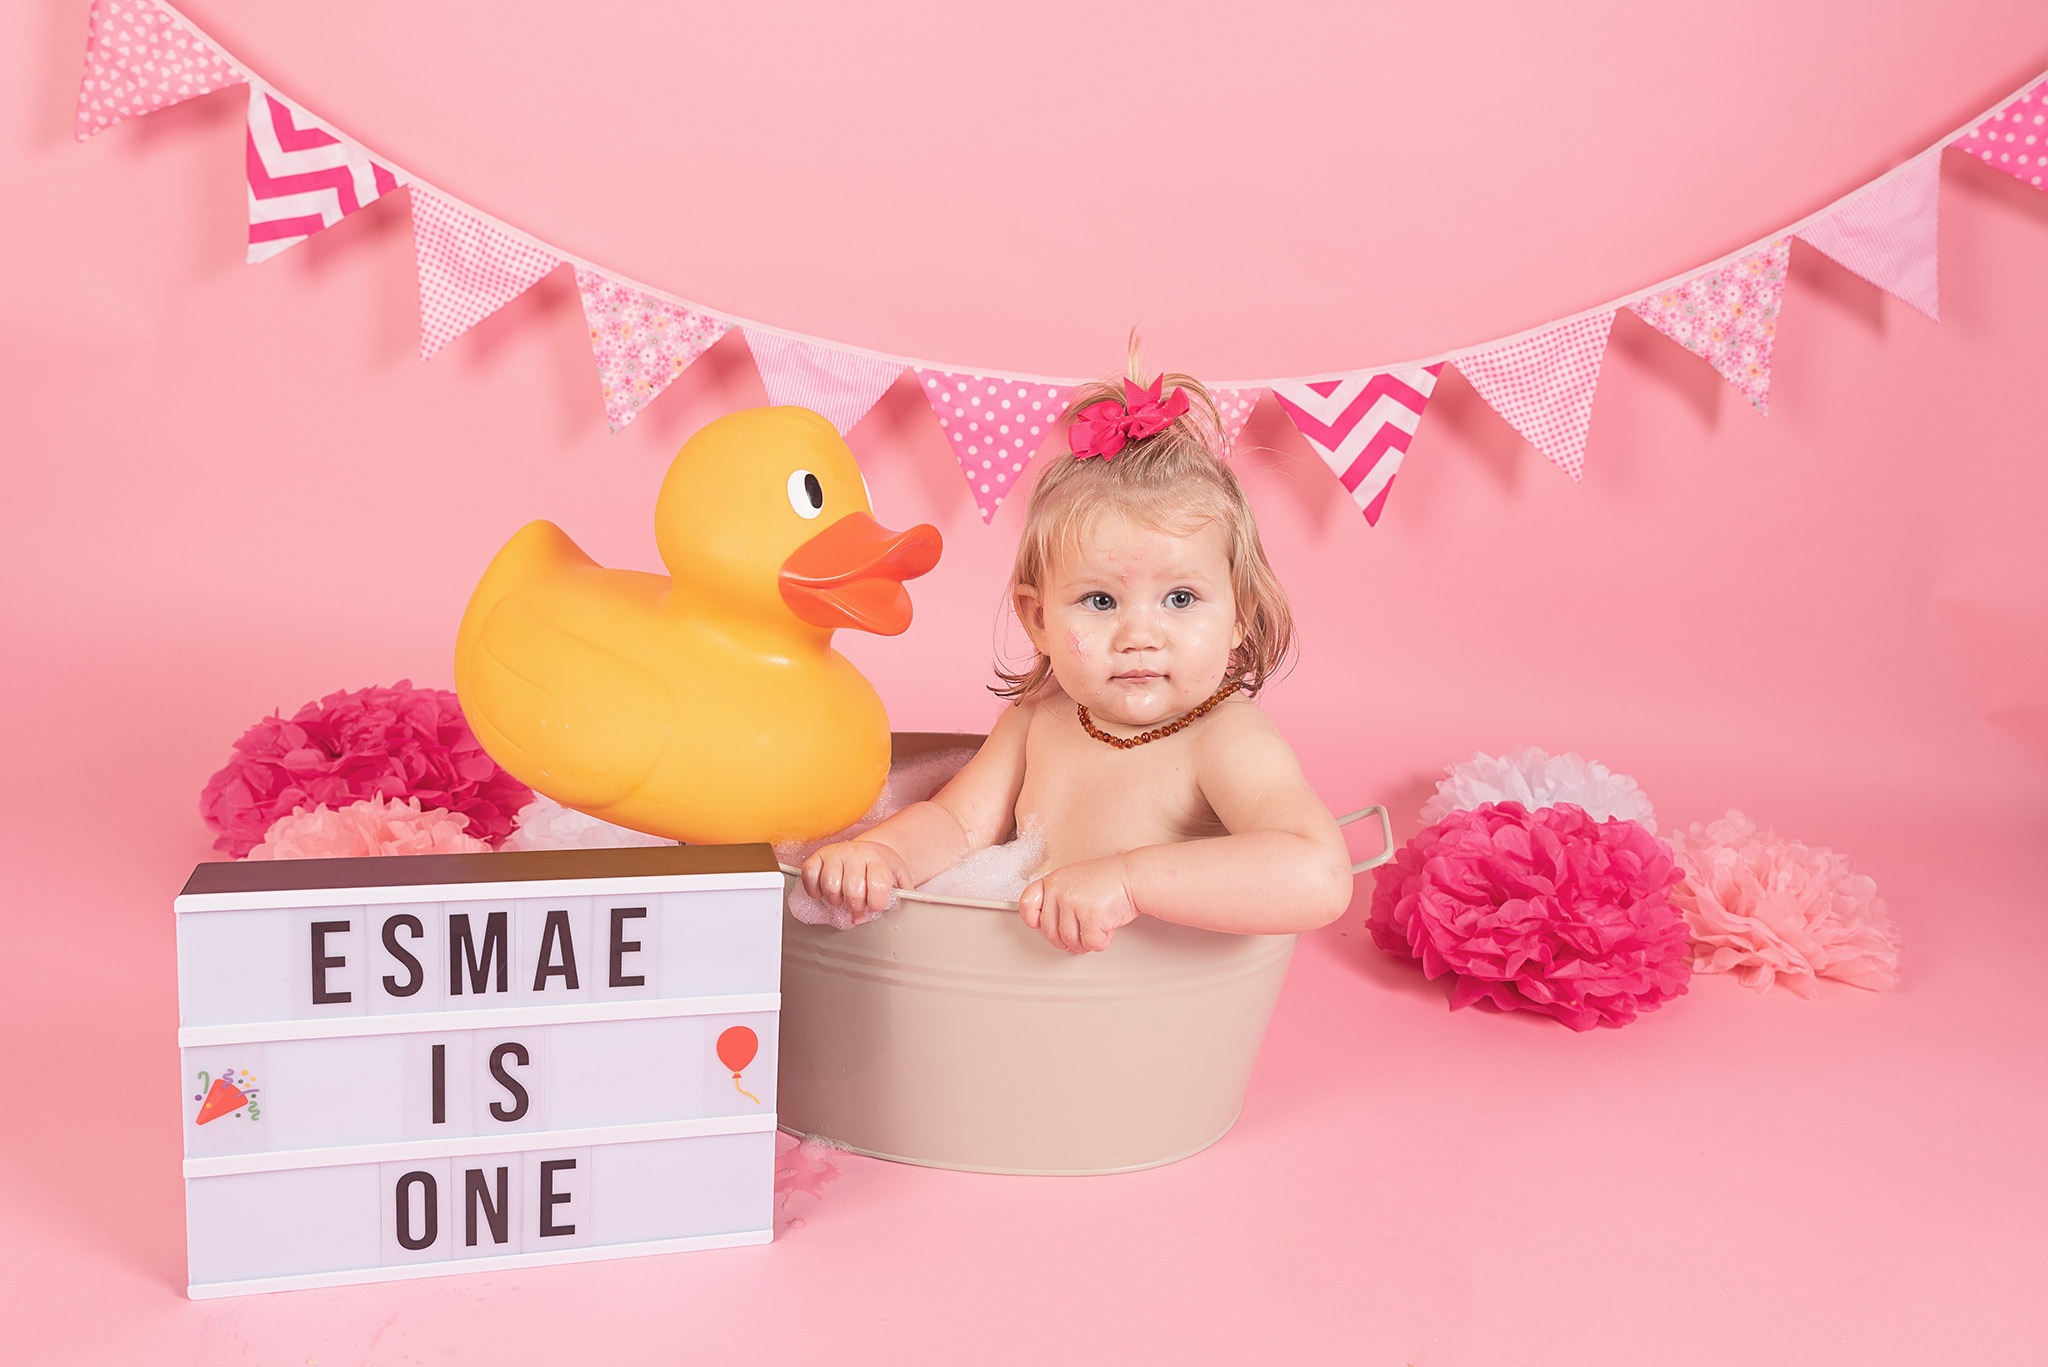 Cake smash photography Crawley. Girl in a metal bath tub cream in colour with a giant rubber duck on the edge. Name board that says Esmae is one.